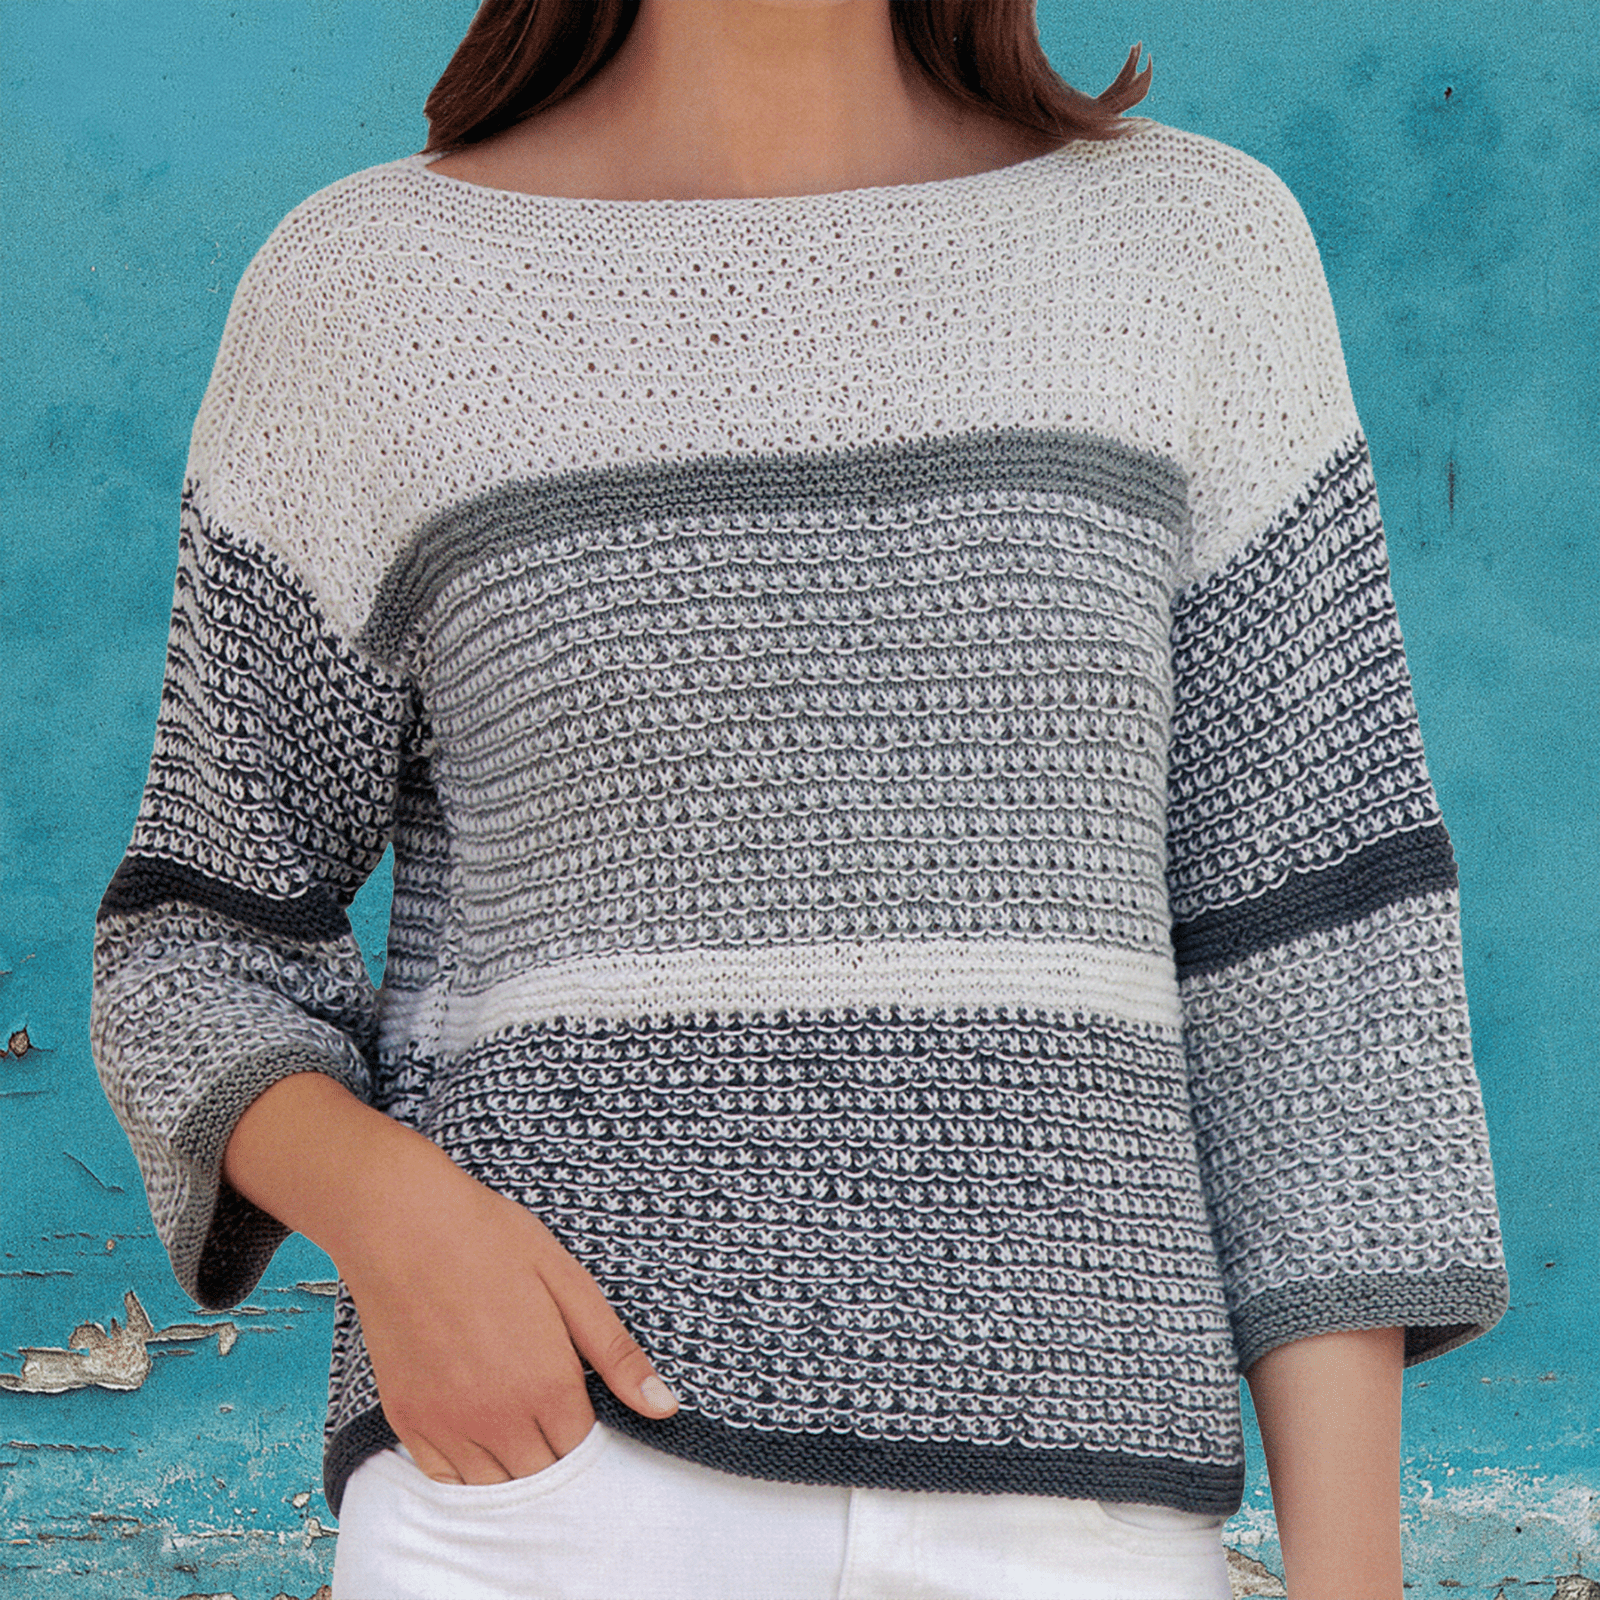 Cotton Cashmere Sweater Kit